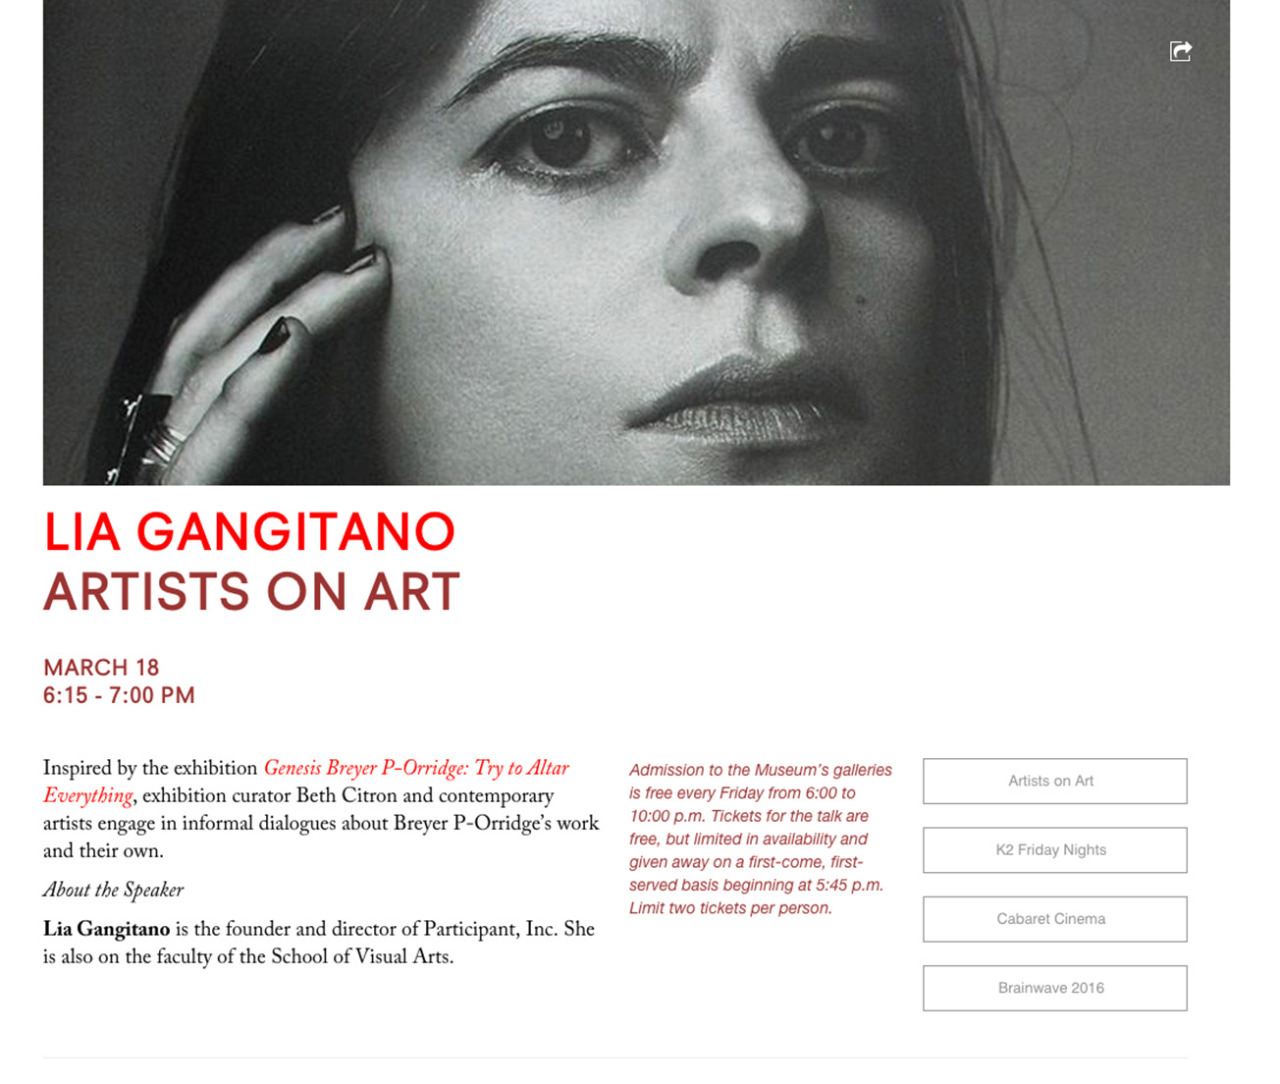 Lia Gangitano  (MFA Faculty) will speak at the  Rubin Museum of Art  on March 18th at 6:15pm. Inspired by the exhibition  Genesis BREYER P-ORRIDGE : Try to Altar Everything, exhibition curator Beth Citron talks to contemporary artist Lia Gangitano about the influences of  Genesis BREYER P-ORRIDGE . Gangitano is the founder and director of  PARTICIPANT INC . For information about admission follow this  link .